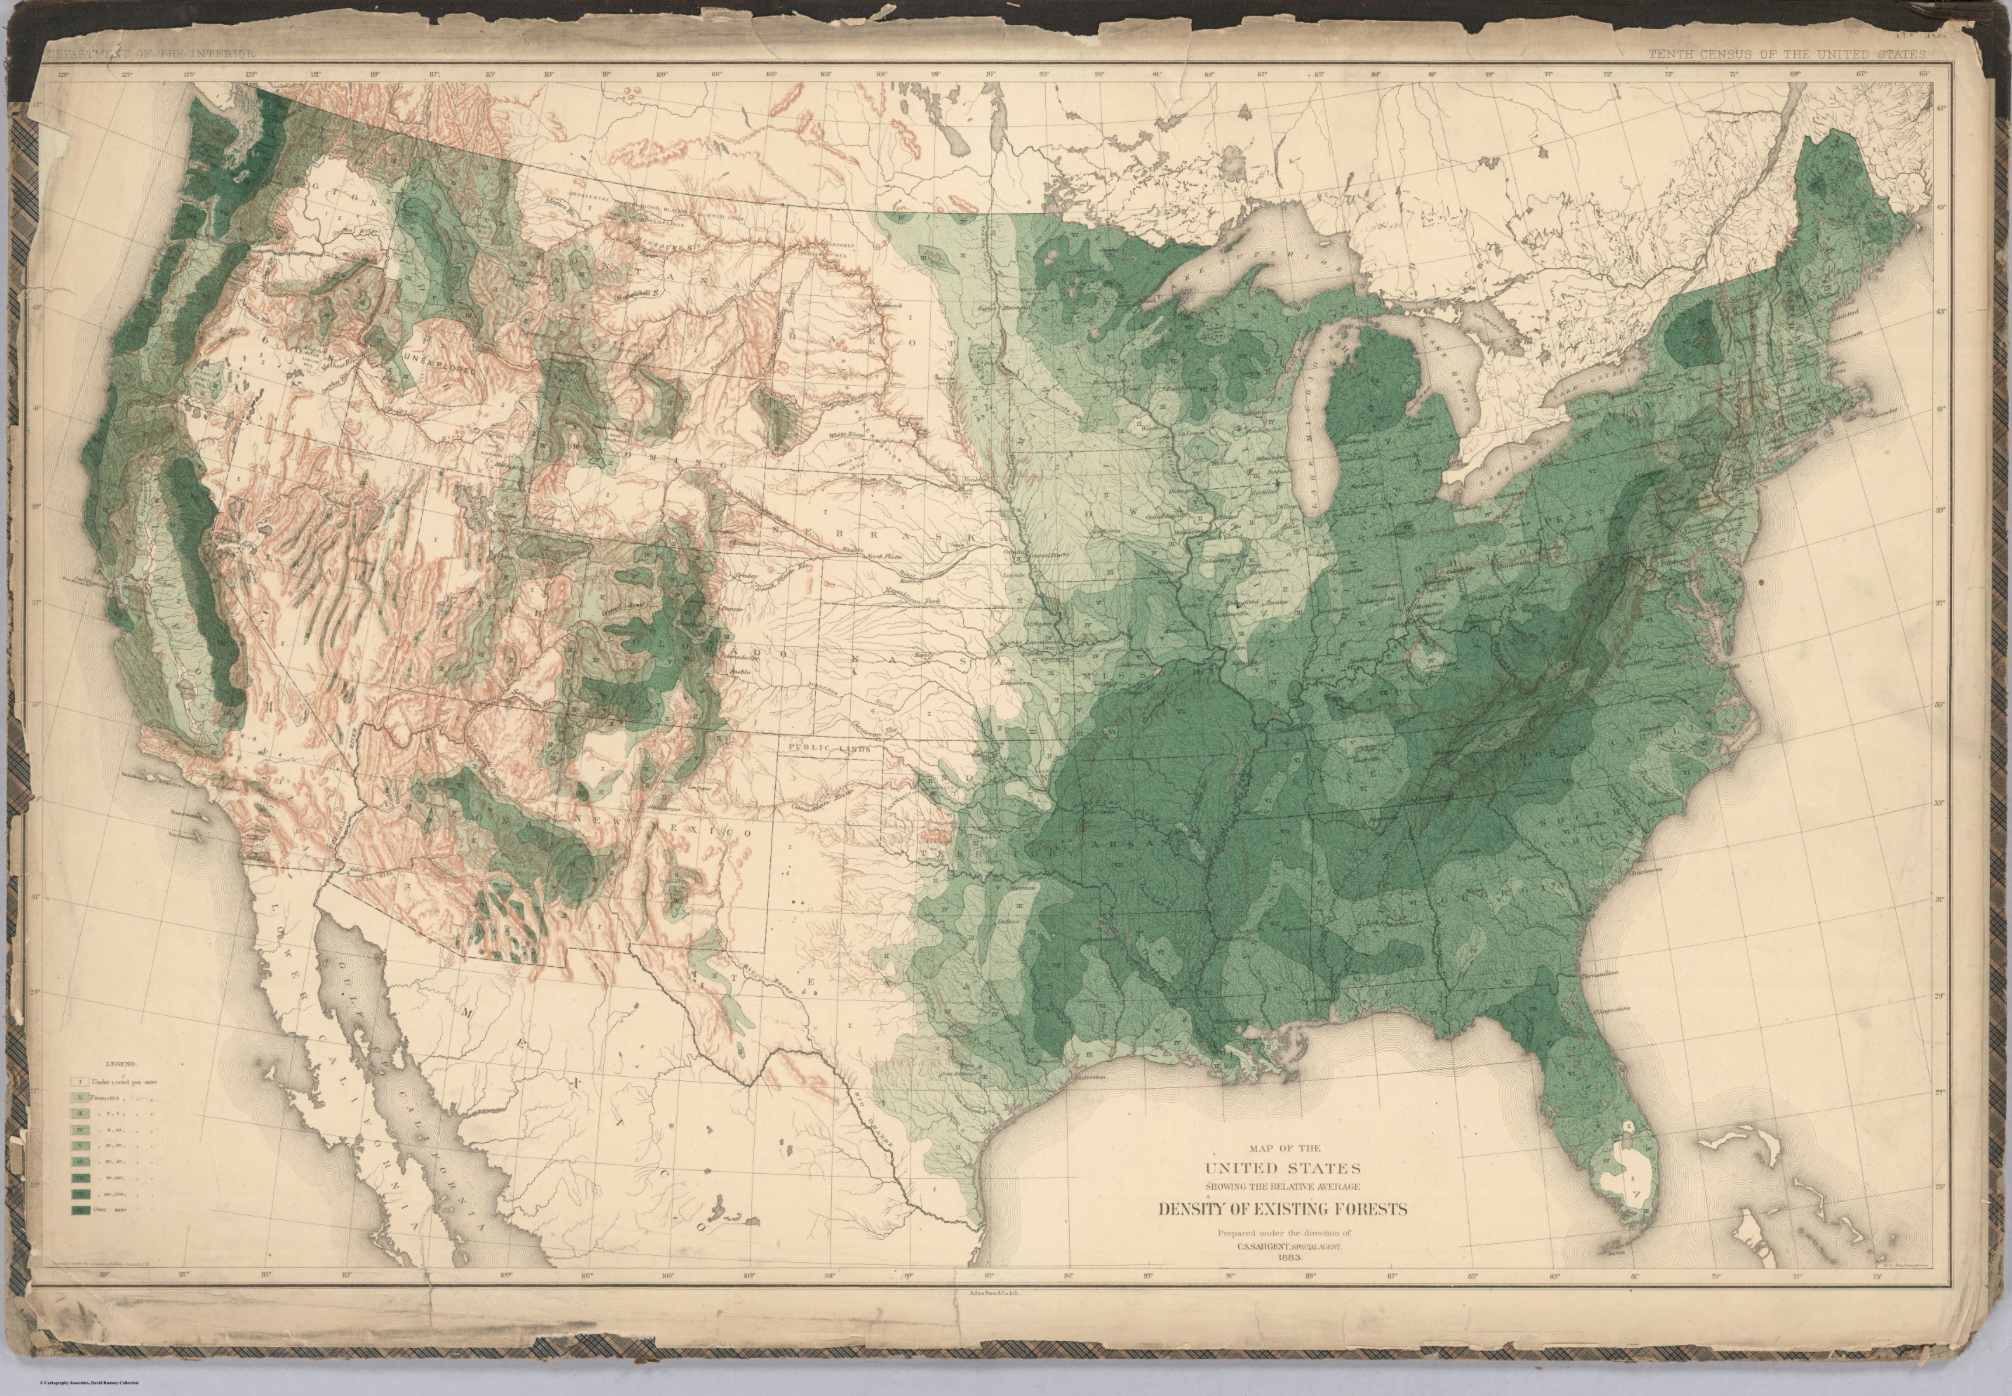 United States Density of Existing Forests 1884